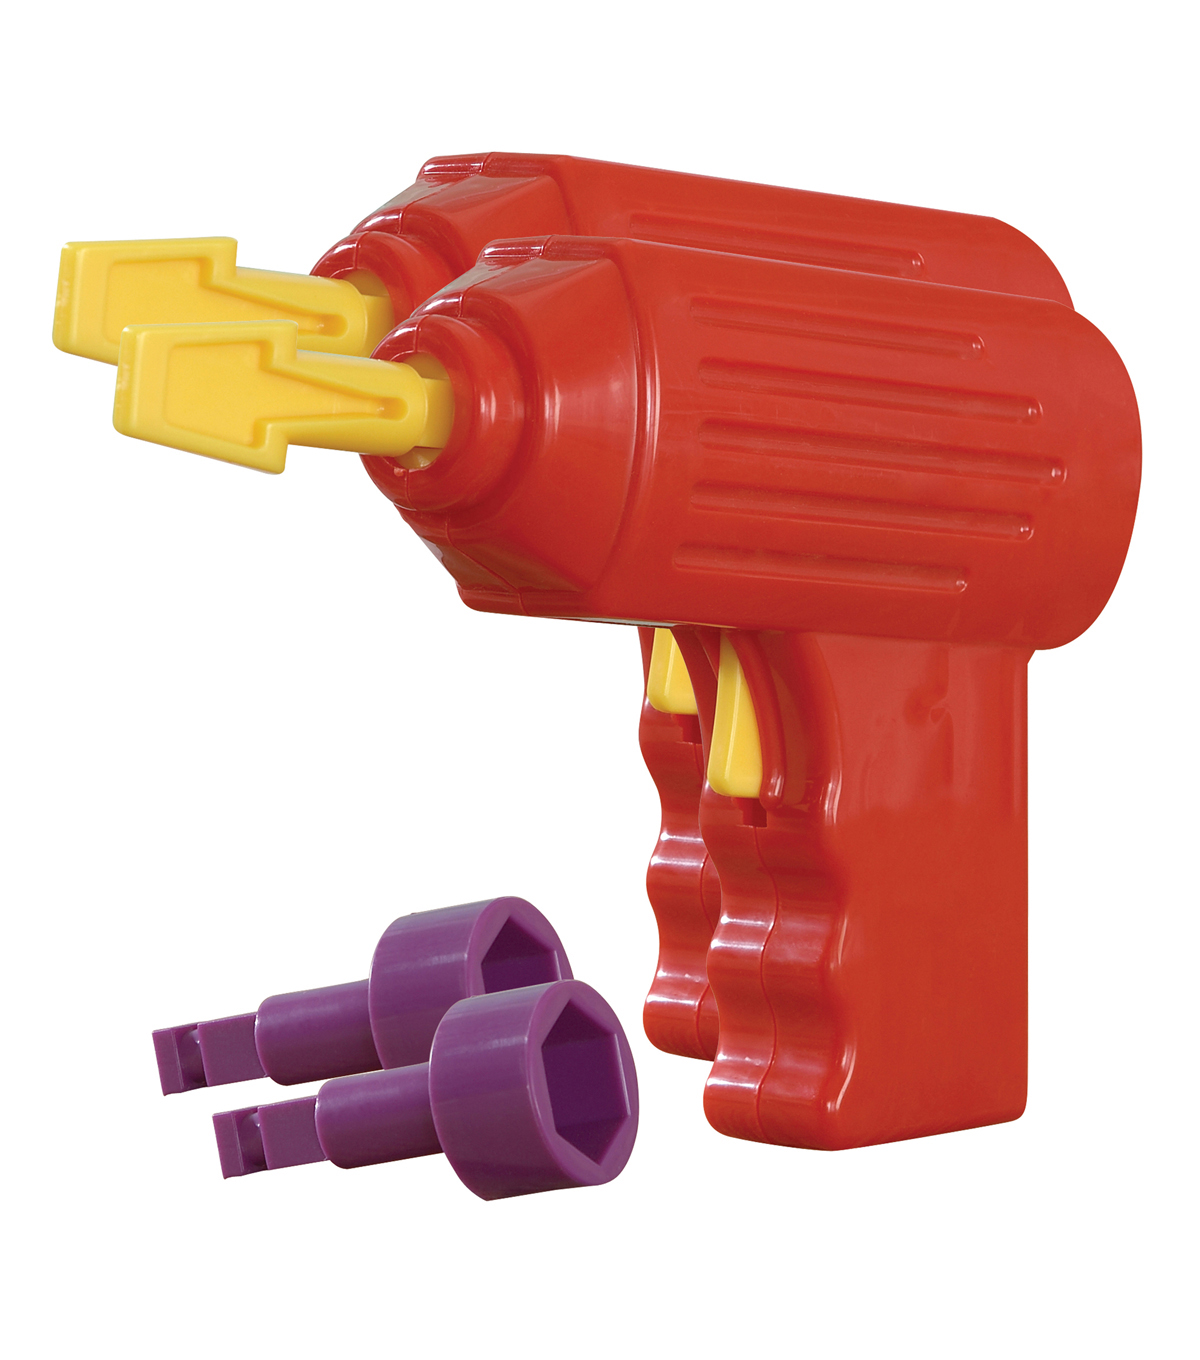 Design & Drill Replacement Drill, Pack of 2